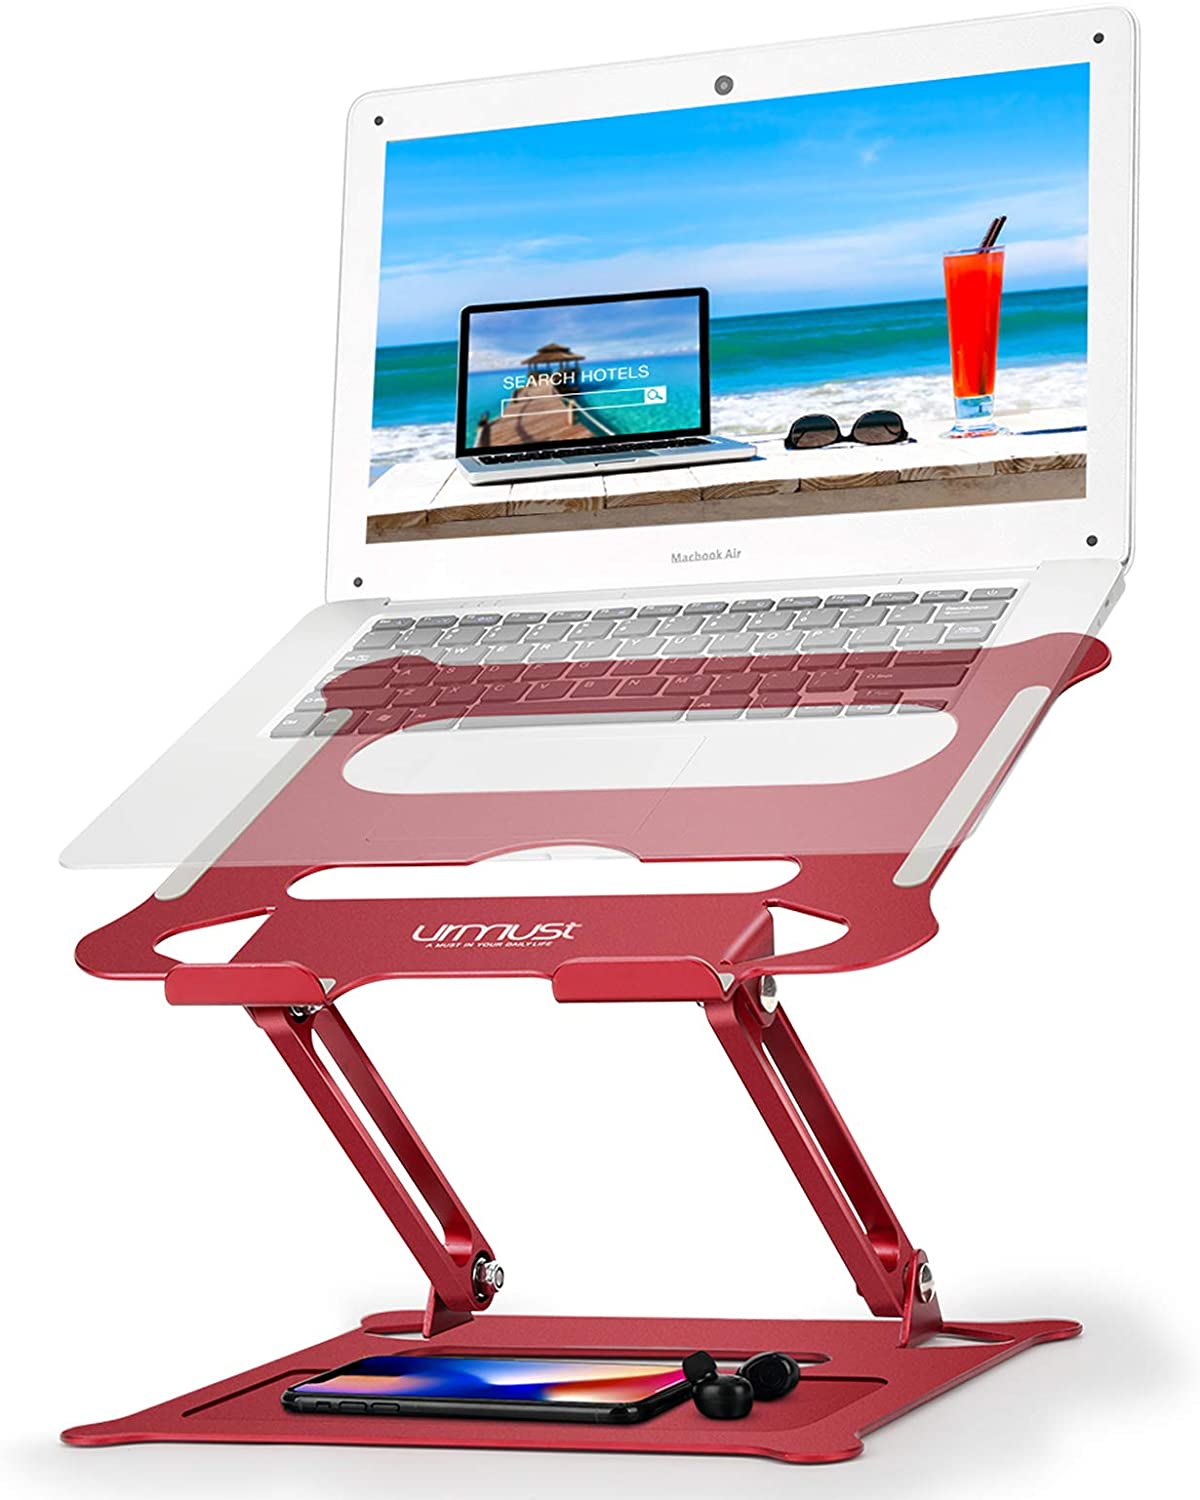 Urmust Laptop Notebook Stand Holder, Ergonomic Adjustable Ultrabook Stand Riser Portable with Mouse Pad Compatible with MacBook Air Pro, Dell, HP, Lenovo Light Weight Aluminum Up to 15.6